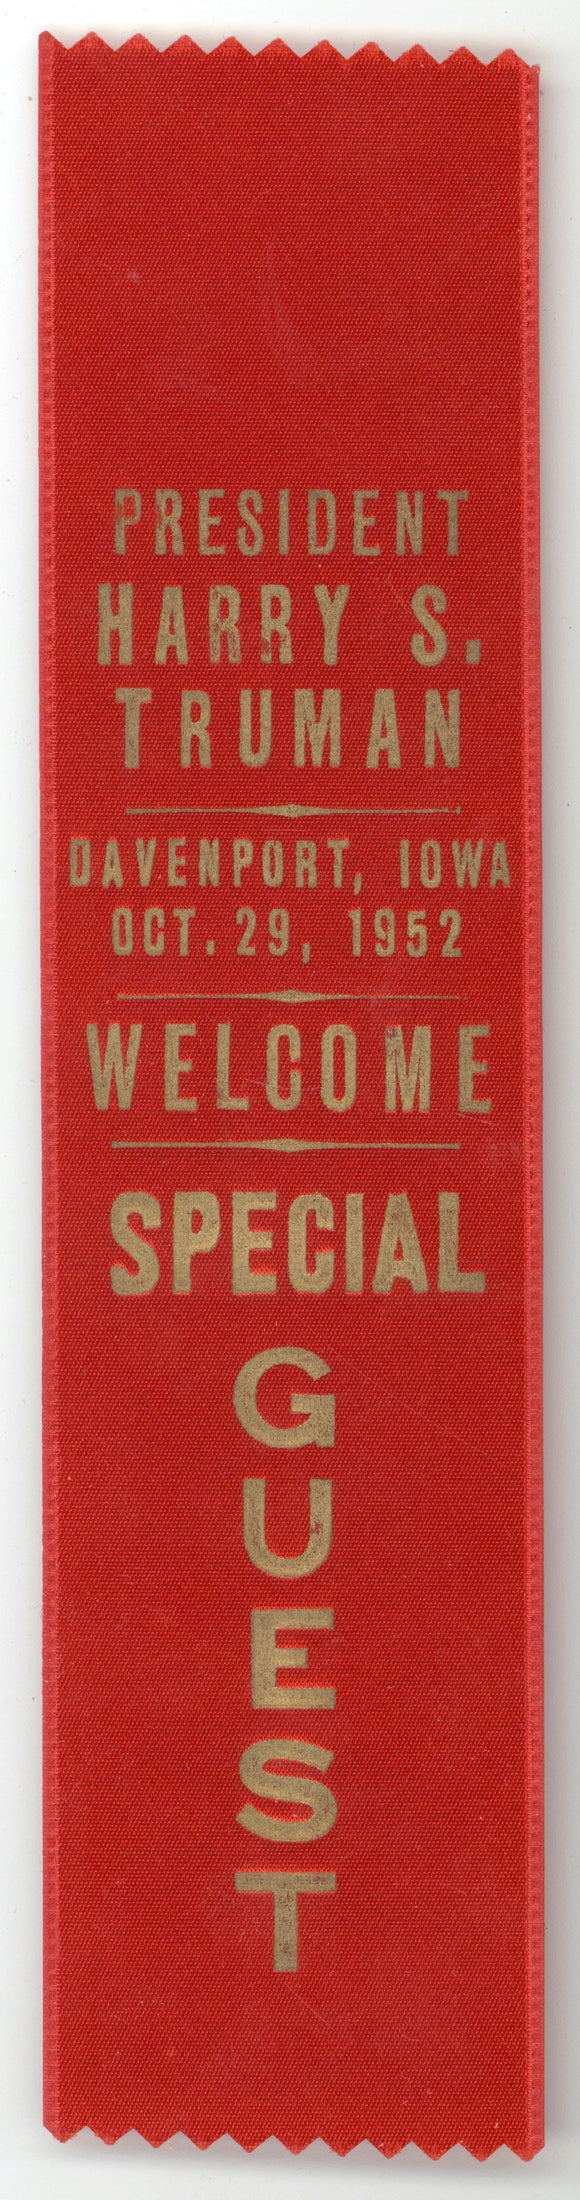 PRESIDENT HARRY S. TRUMAN DAVENPORT, IOWA OCT. 29, 1952  WELCOME